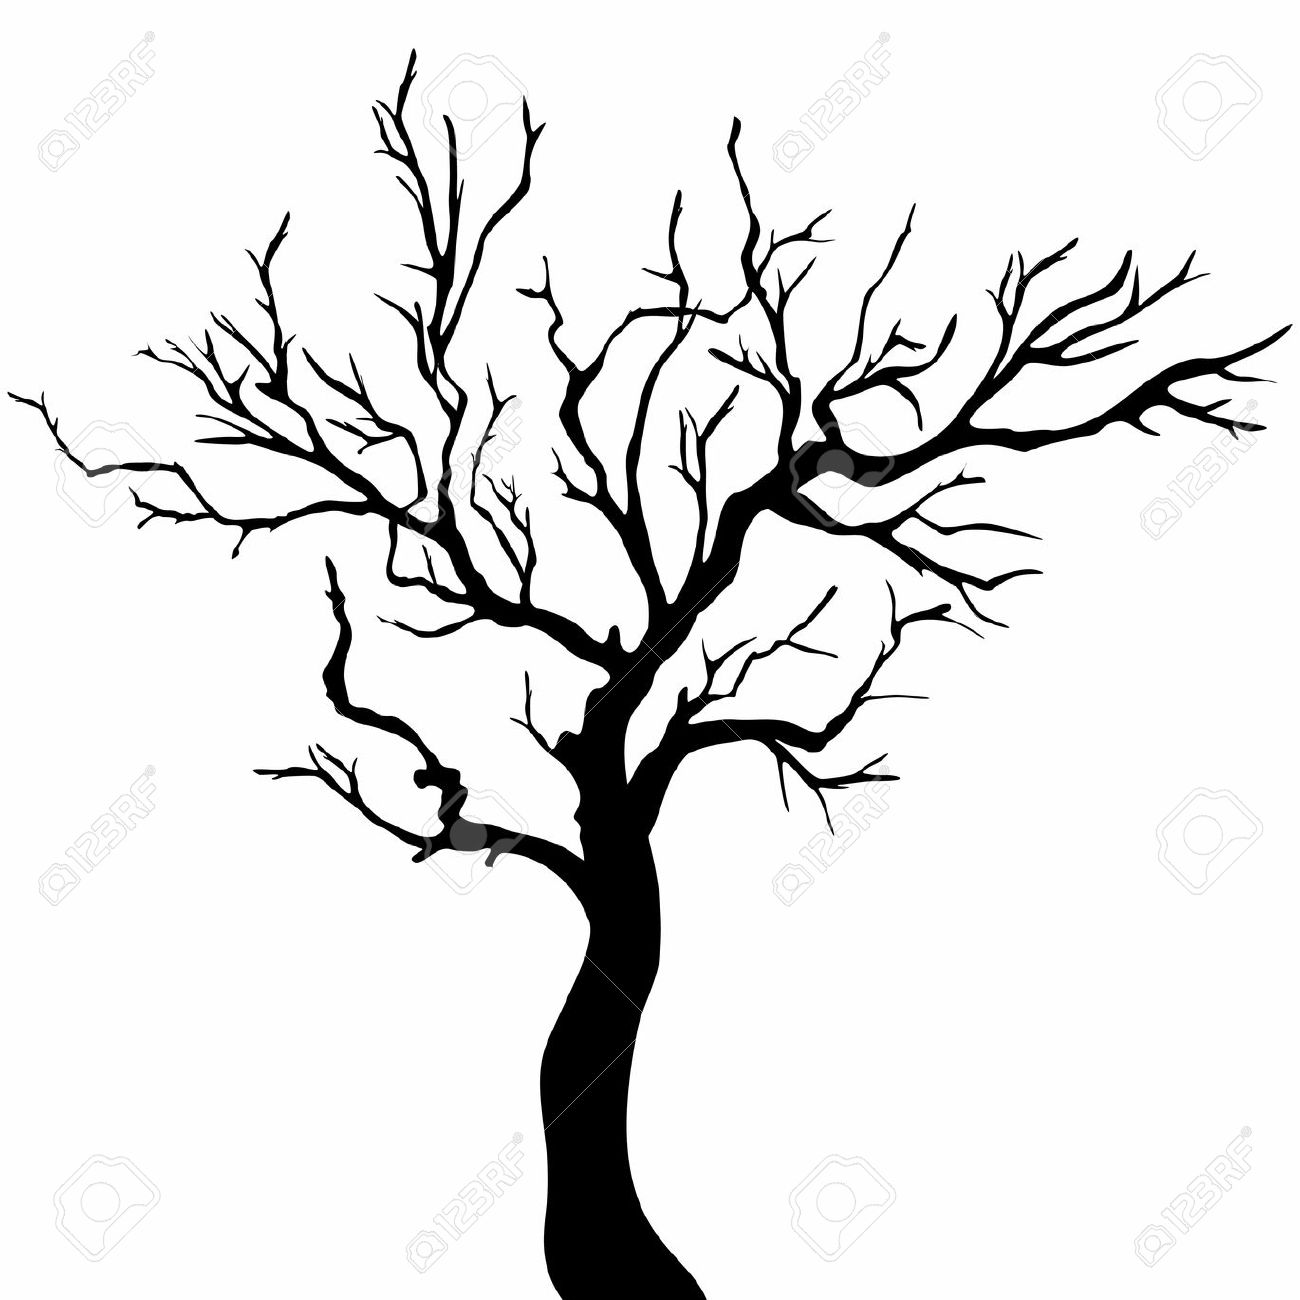 Willow Tree Silhouette Clip Art At Getdrawings